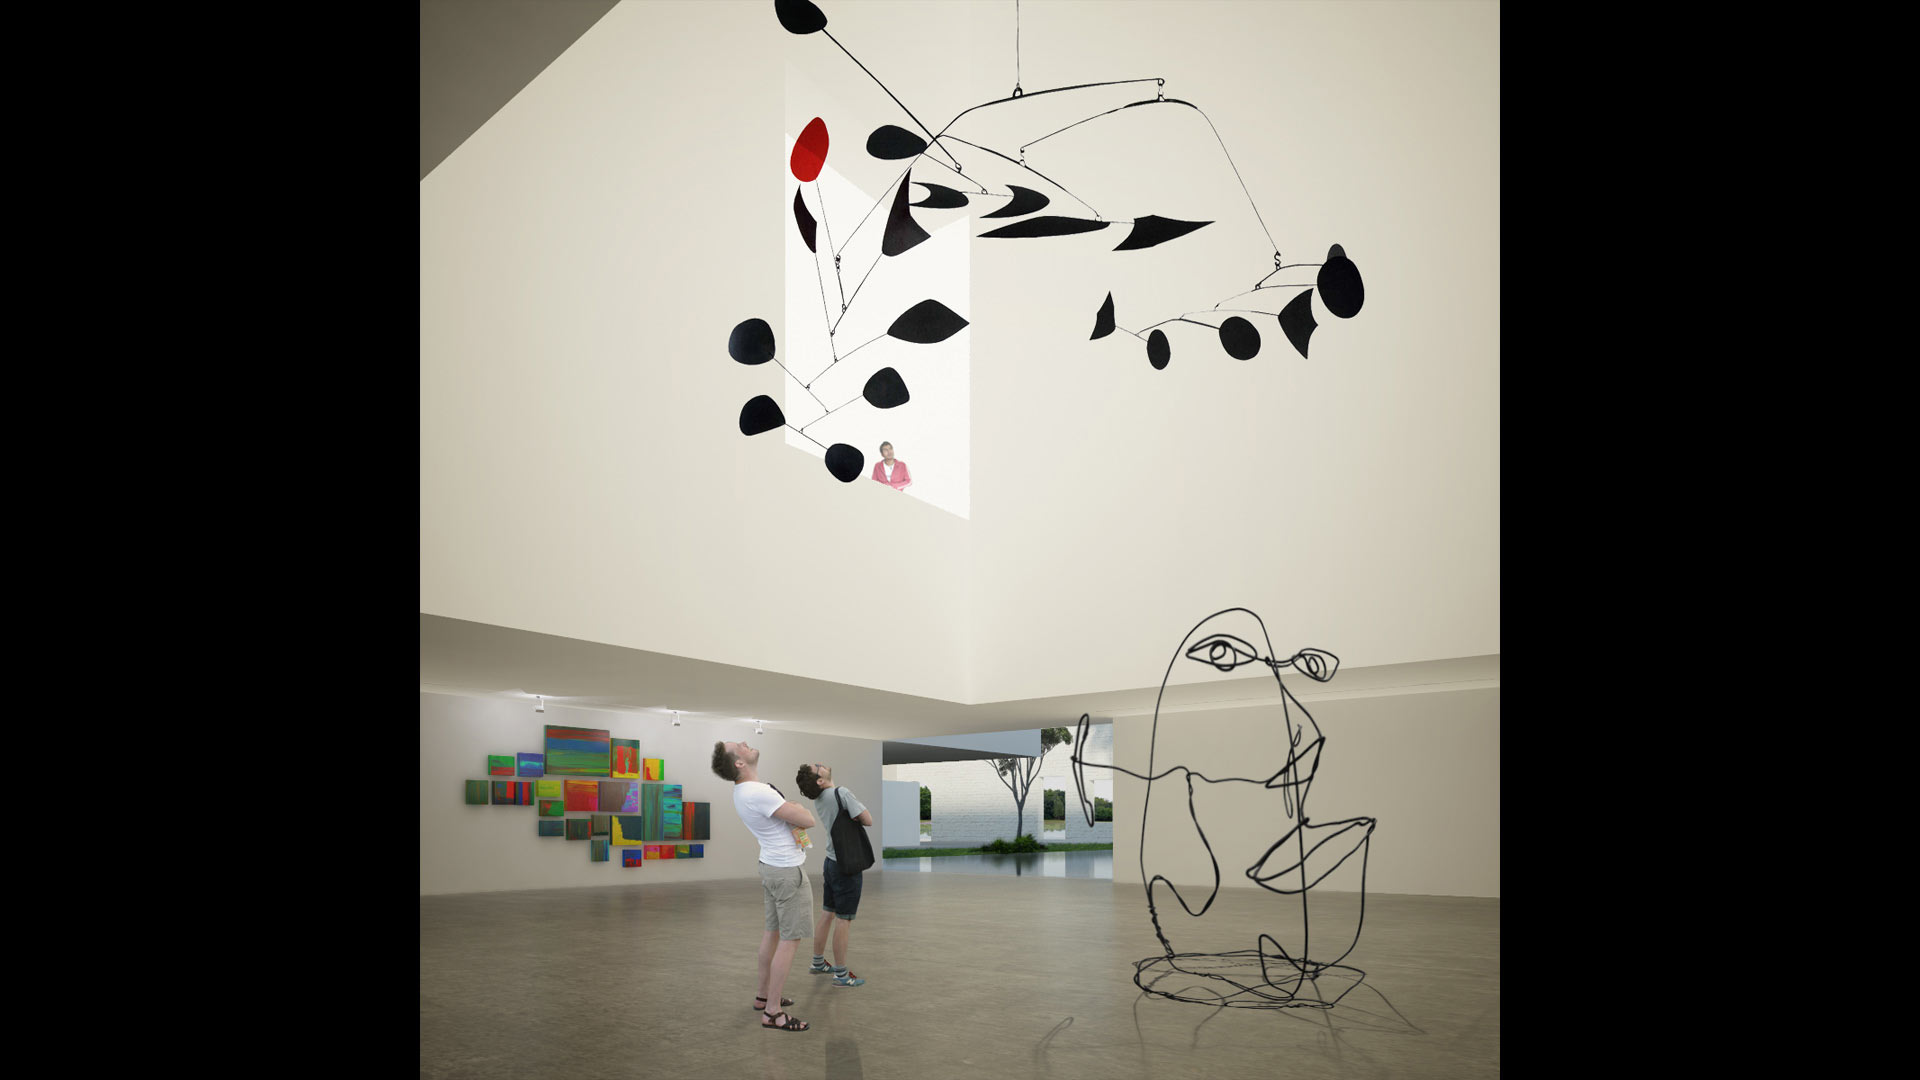 Art Foundation, Mauritius - Competition Image - 3D Visualisation